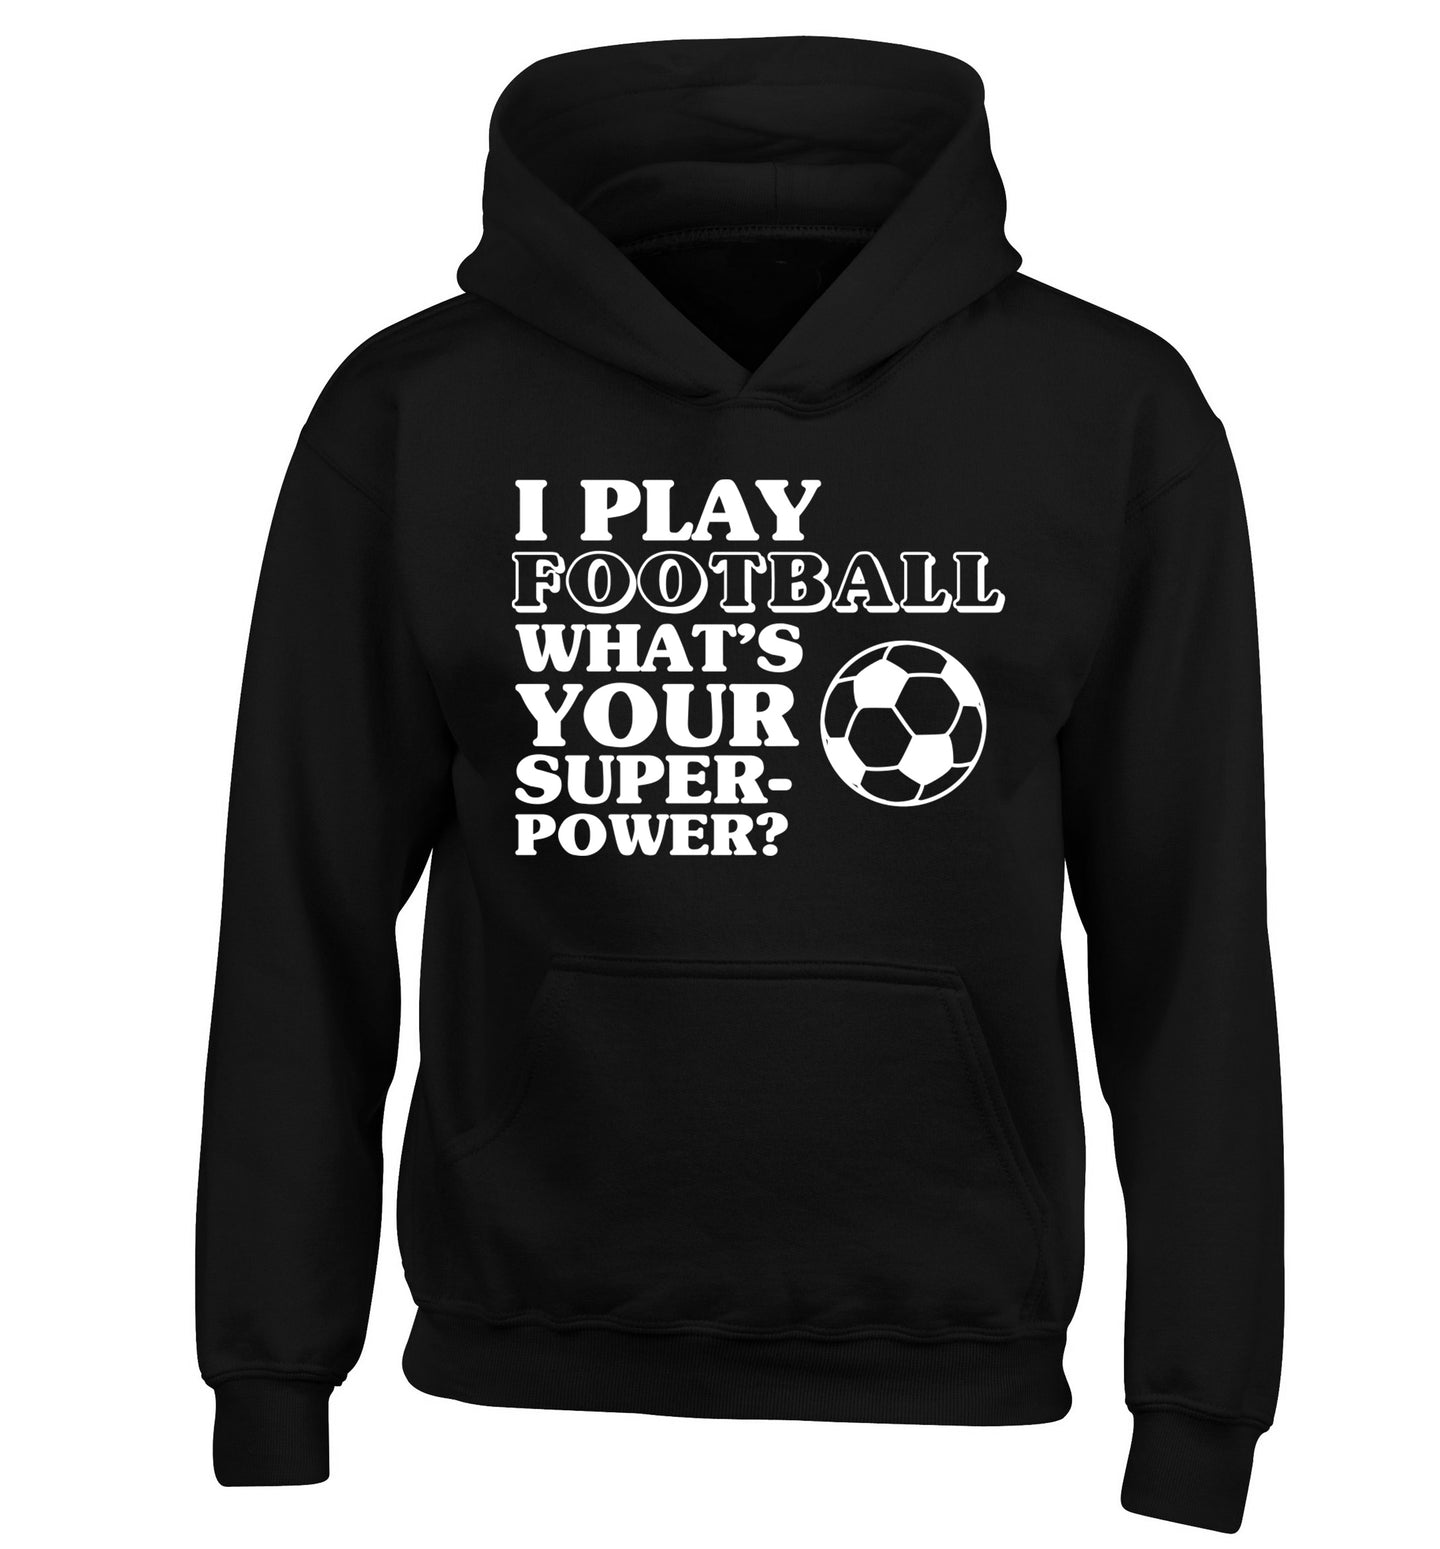 I play football what's your superpower? children's black hoodie 12-14 Years